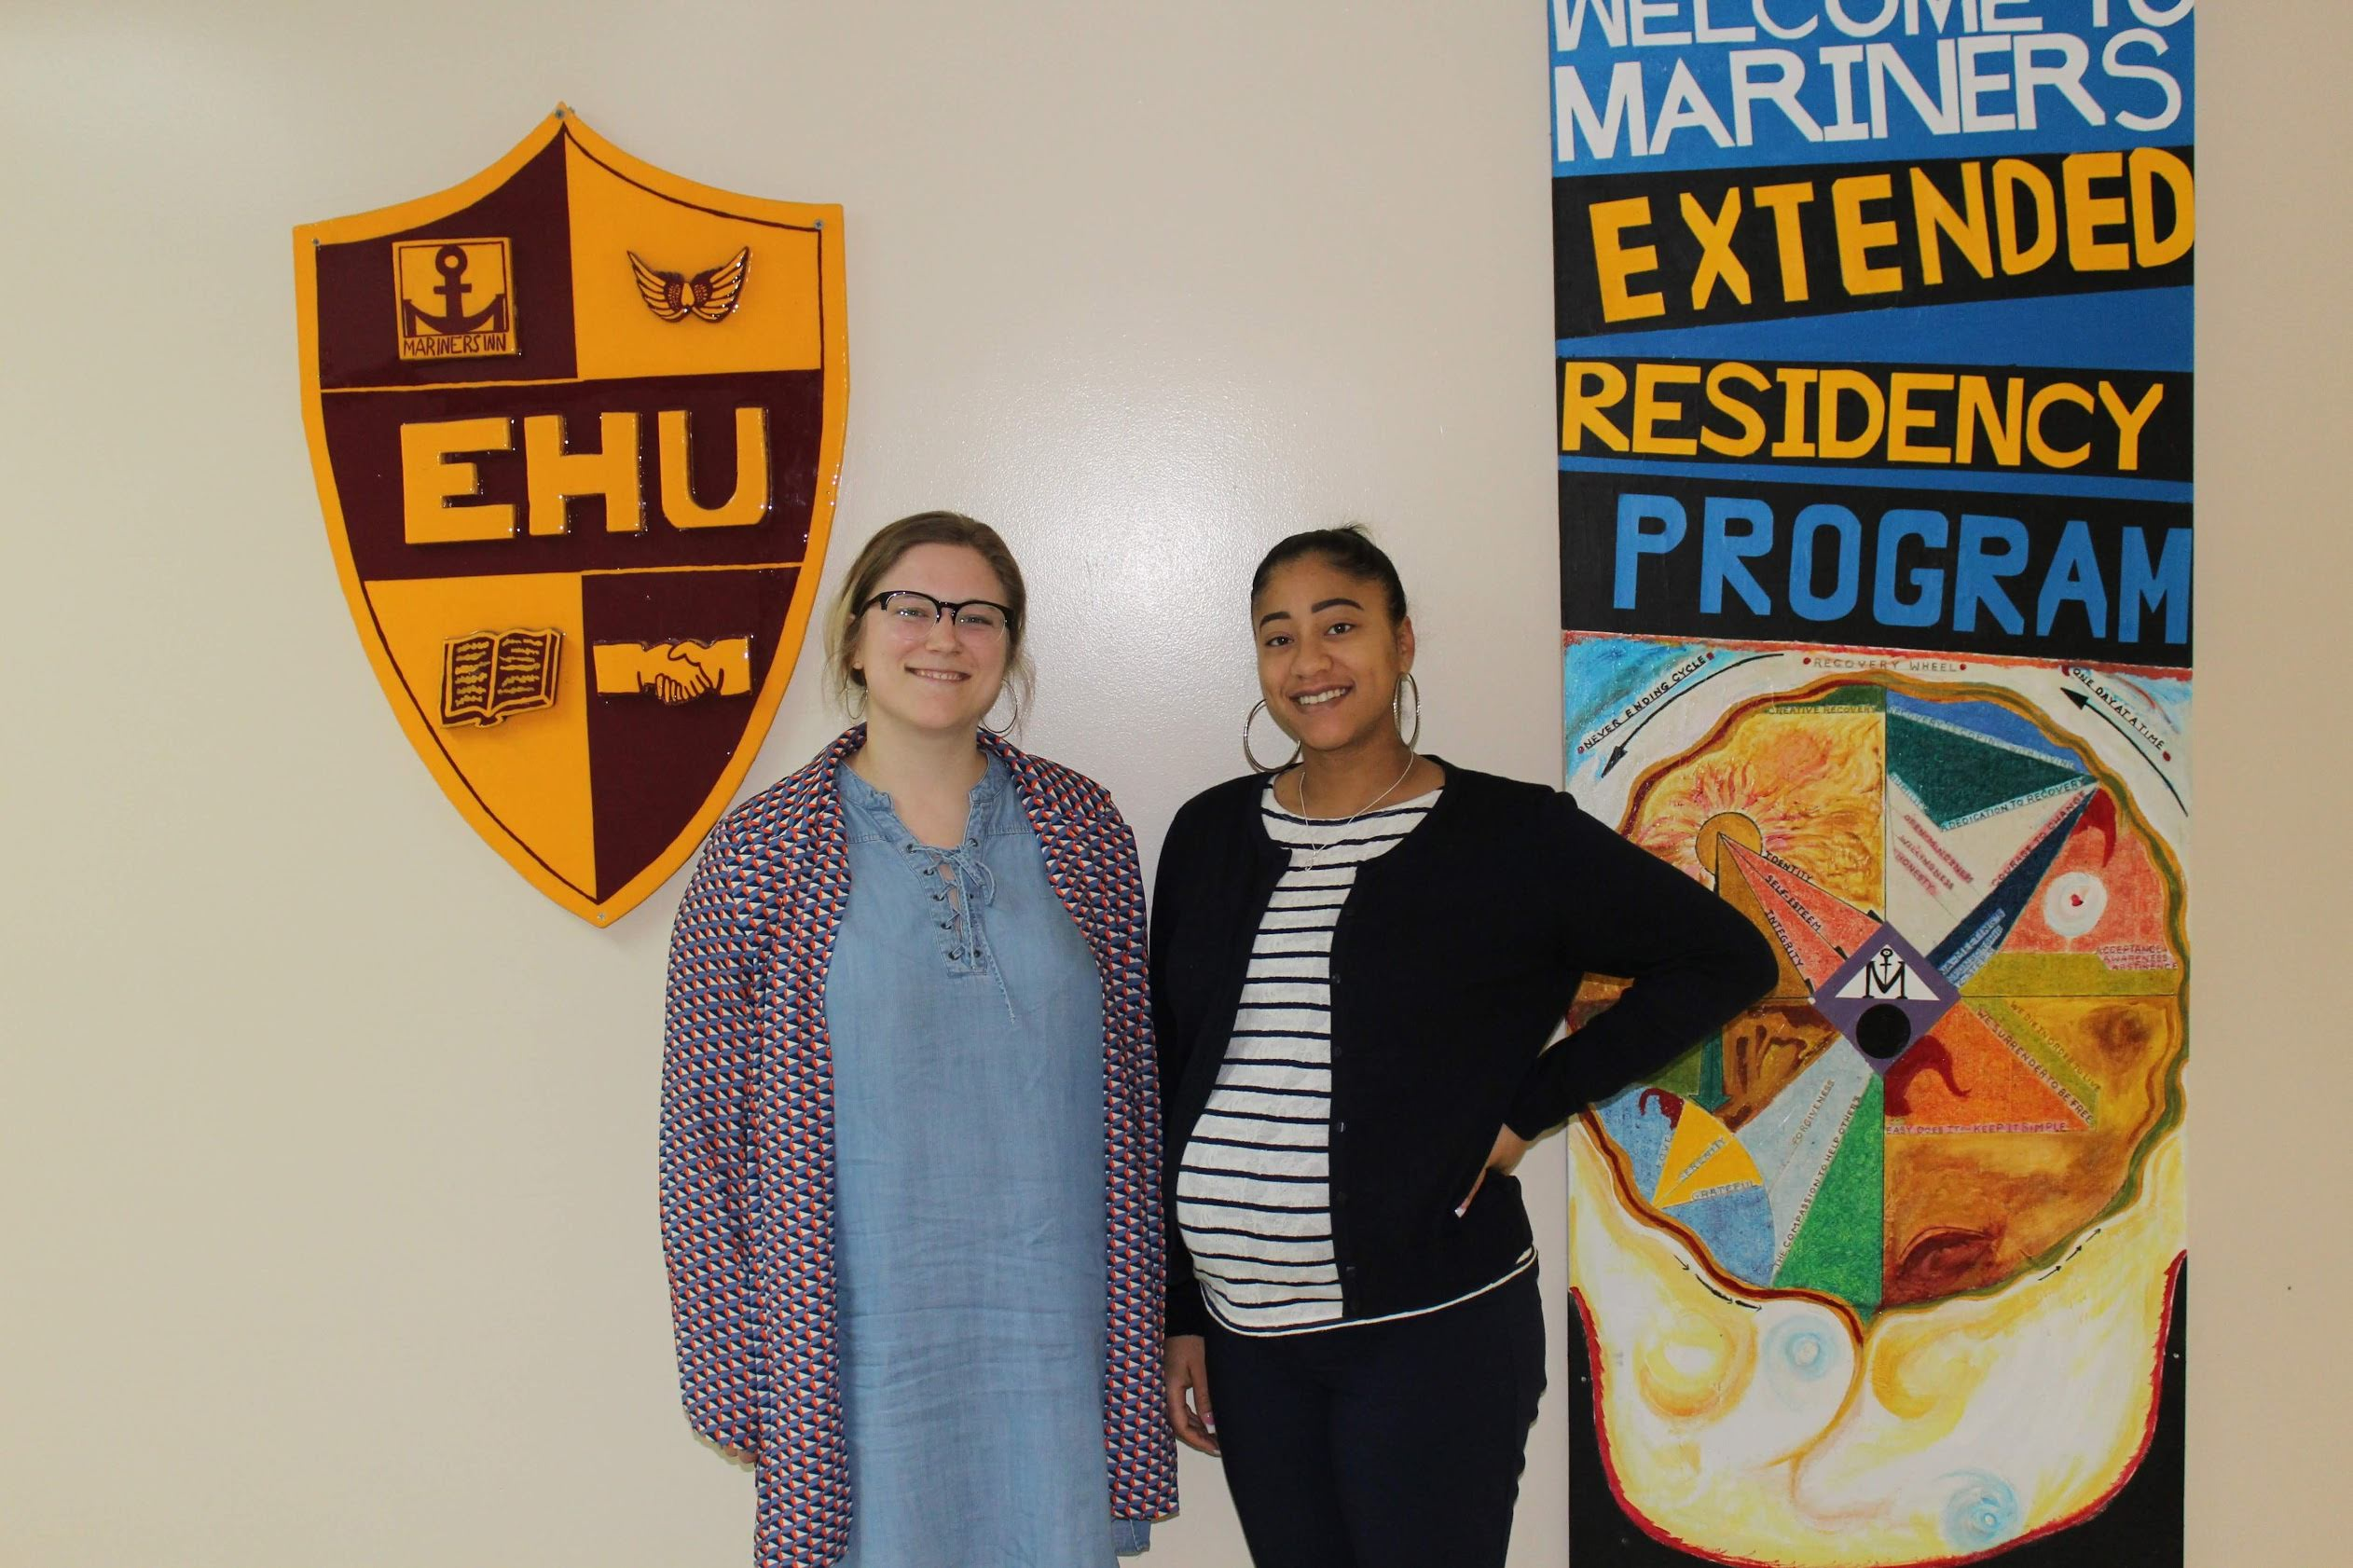 Erica Rakowicz, Mariners Inn community relations director, and Tehilah Tolber, volunteer coordinator